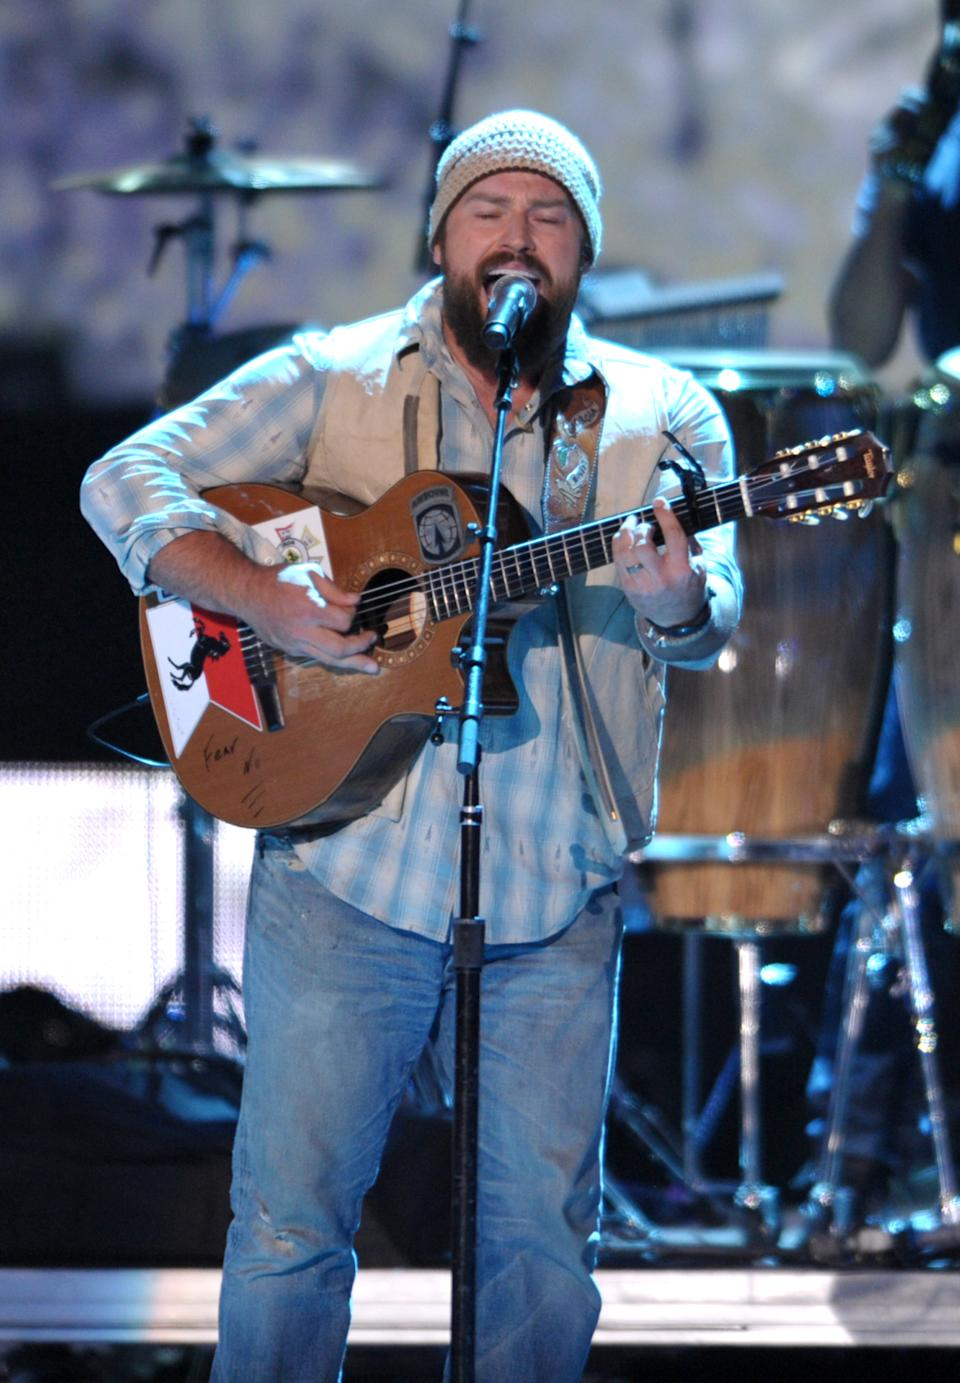 Zac Brown performs with the Zac Brown Band at the 2012 CMT Music Awards on Wednesday, June 6, 2012 in Nashville, Tenn. (Photo by John Shearer/Invision/AP)